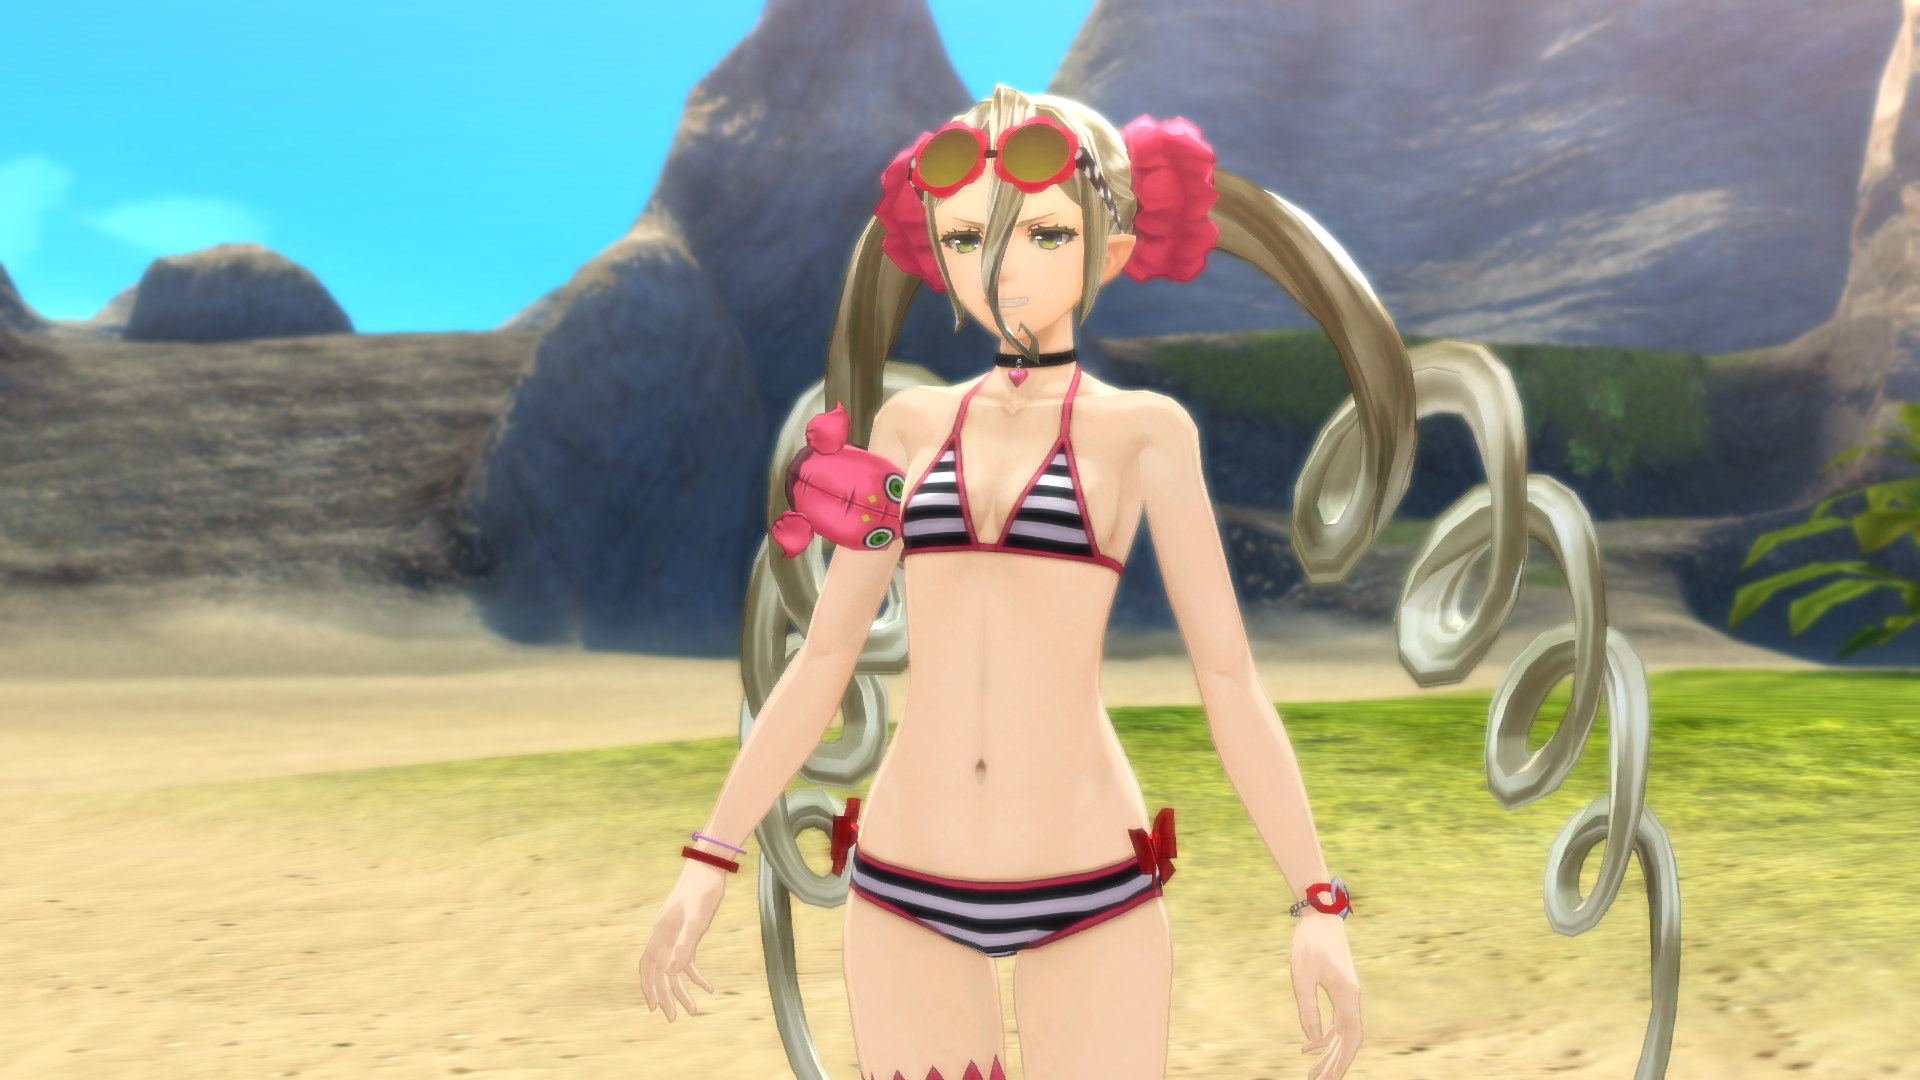 Berseria Sommerurlaub Outfits (9)